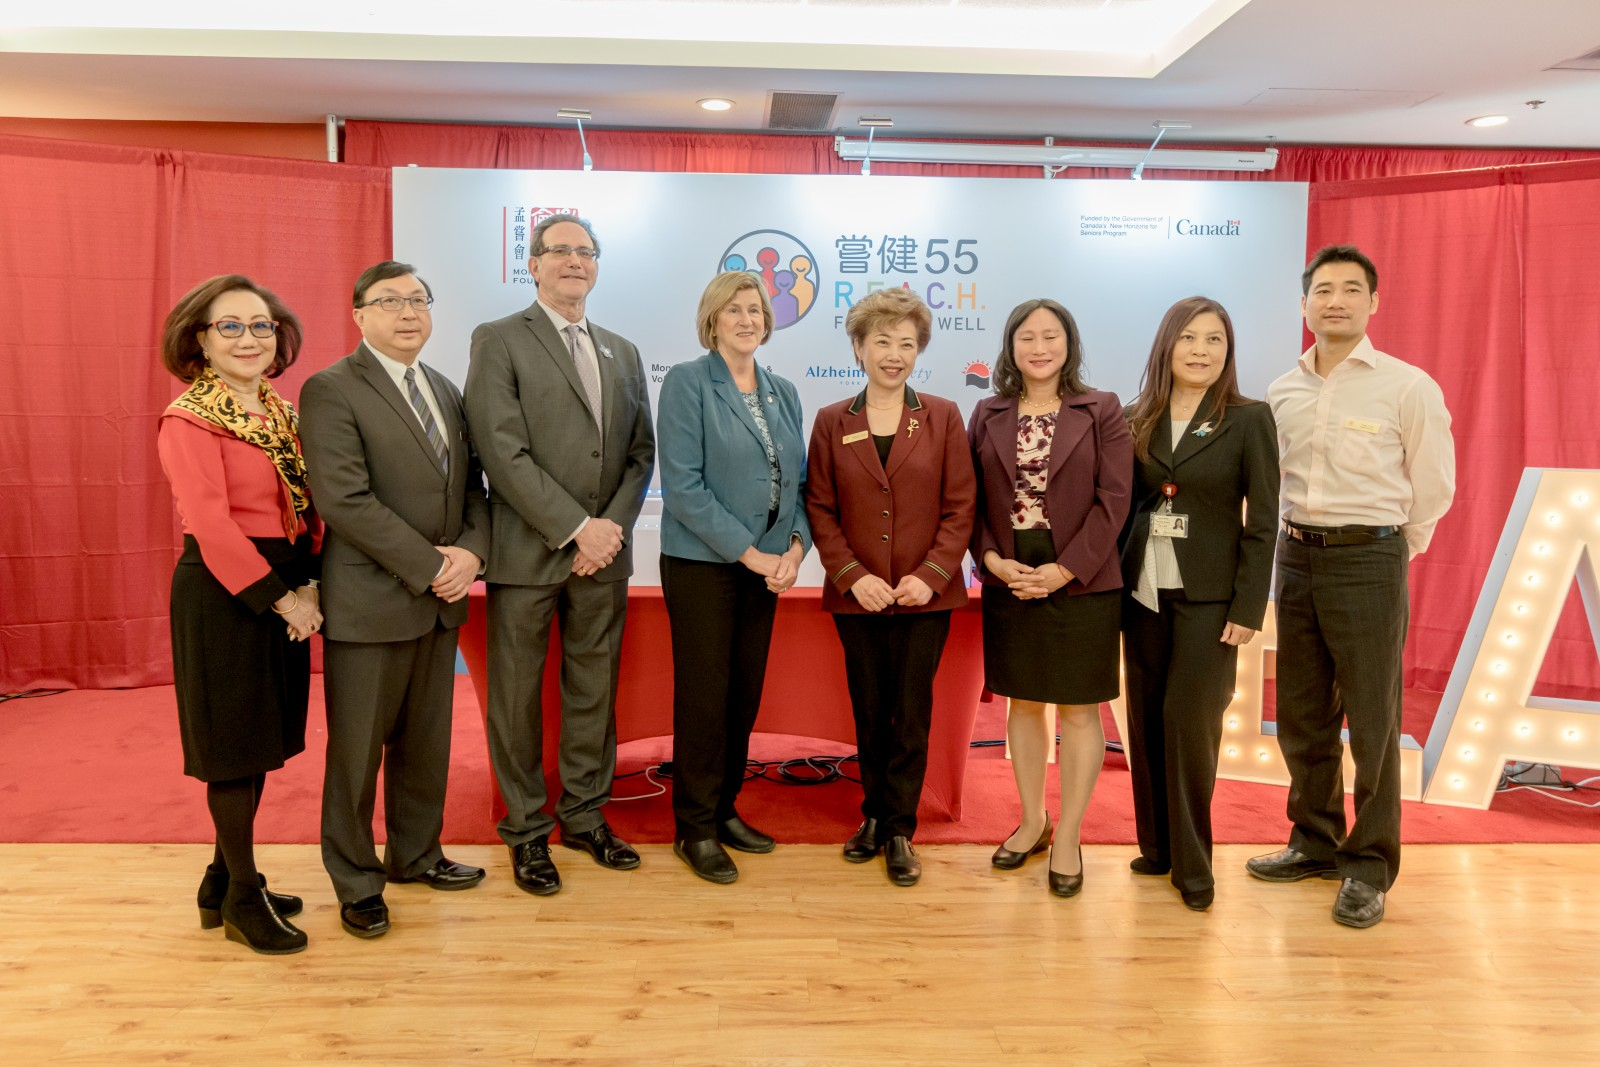 Mon Sheong thanks MP Helena Jaczek and Jean Yip for joining the event